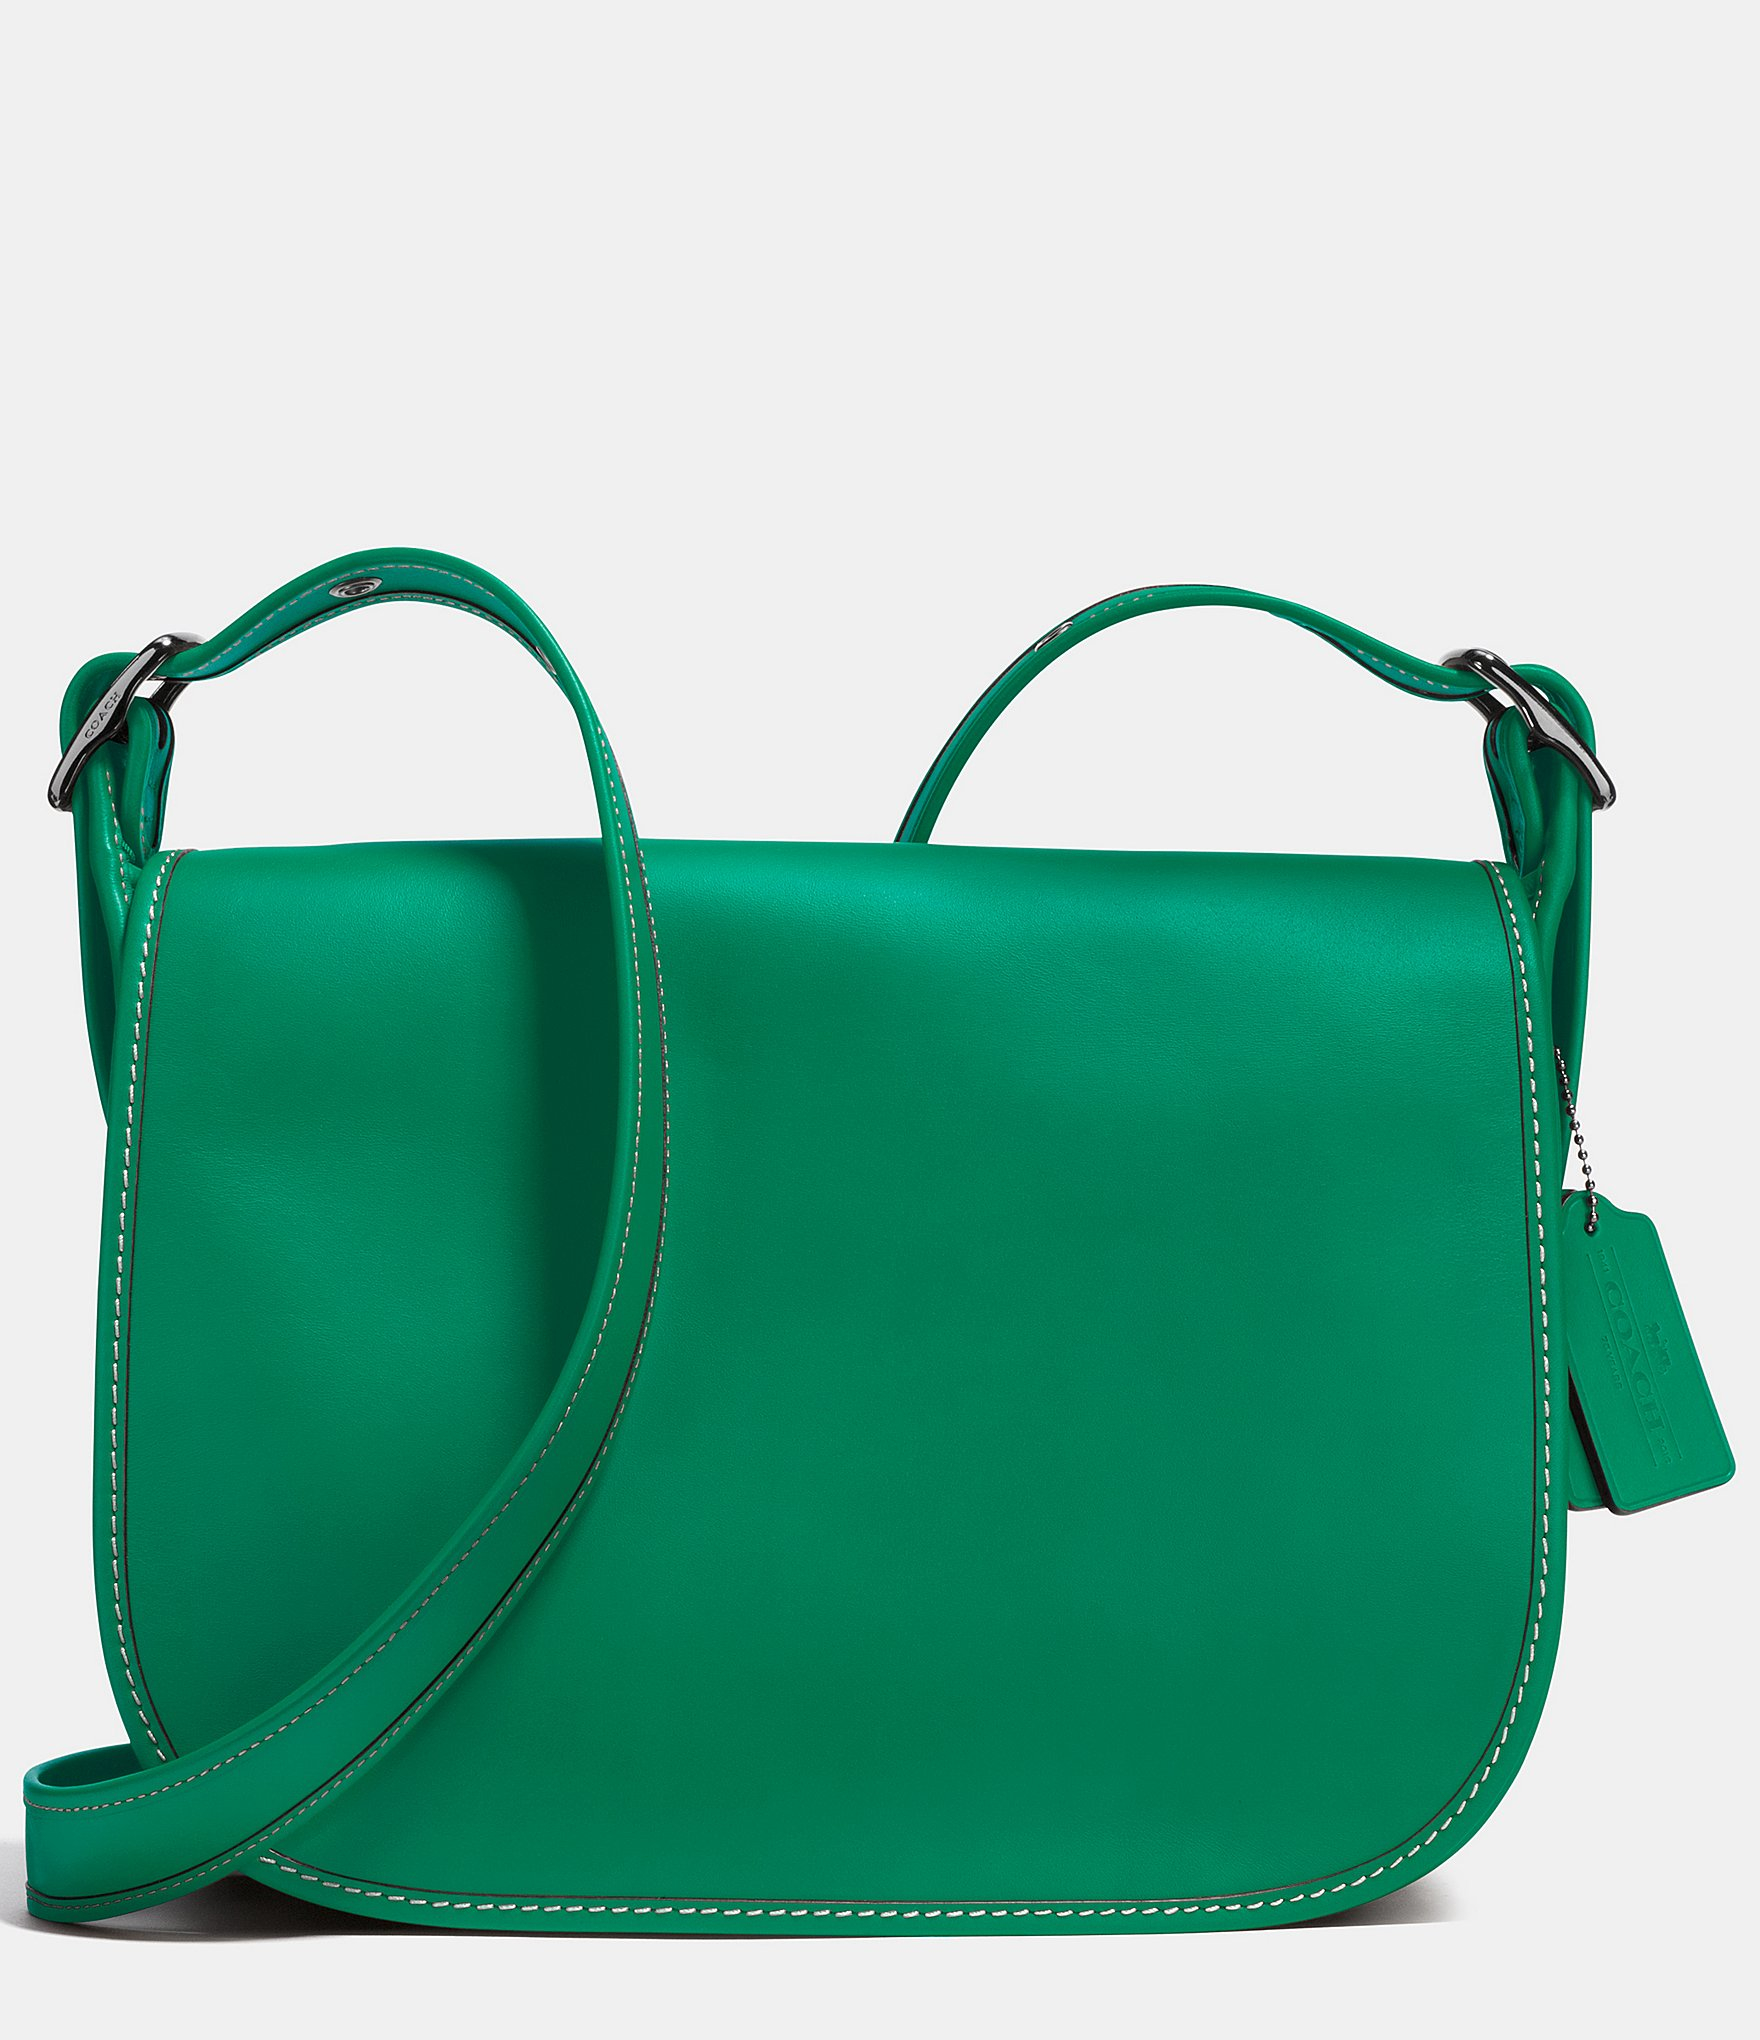 397ff3958b8 ... coupon code for lyst coach saddle bag in glovetanned leather in green  daf0e 38b49 ...